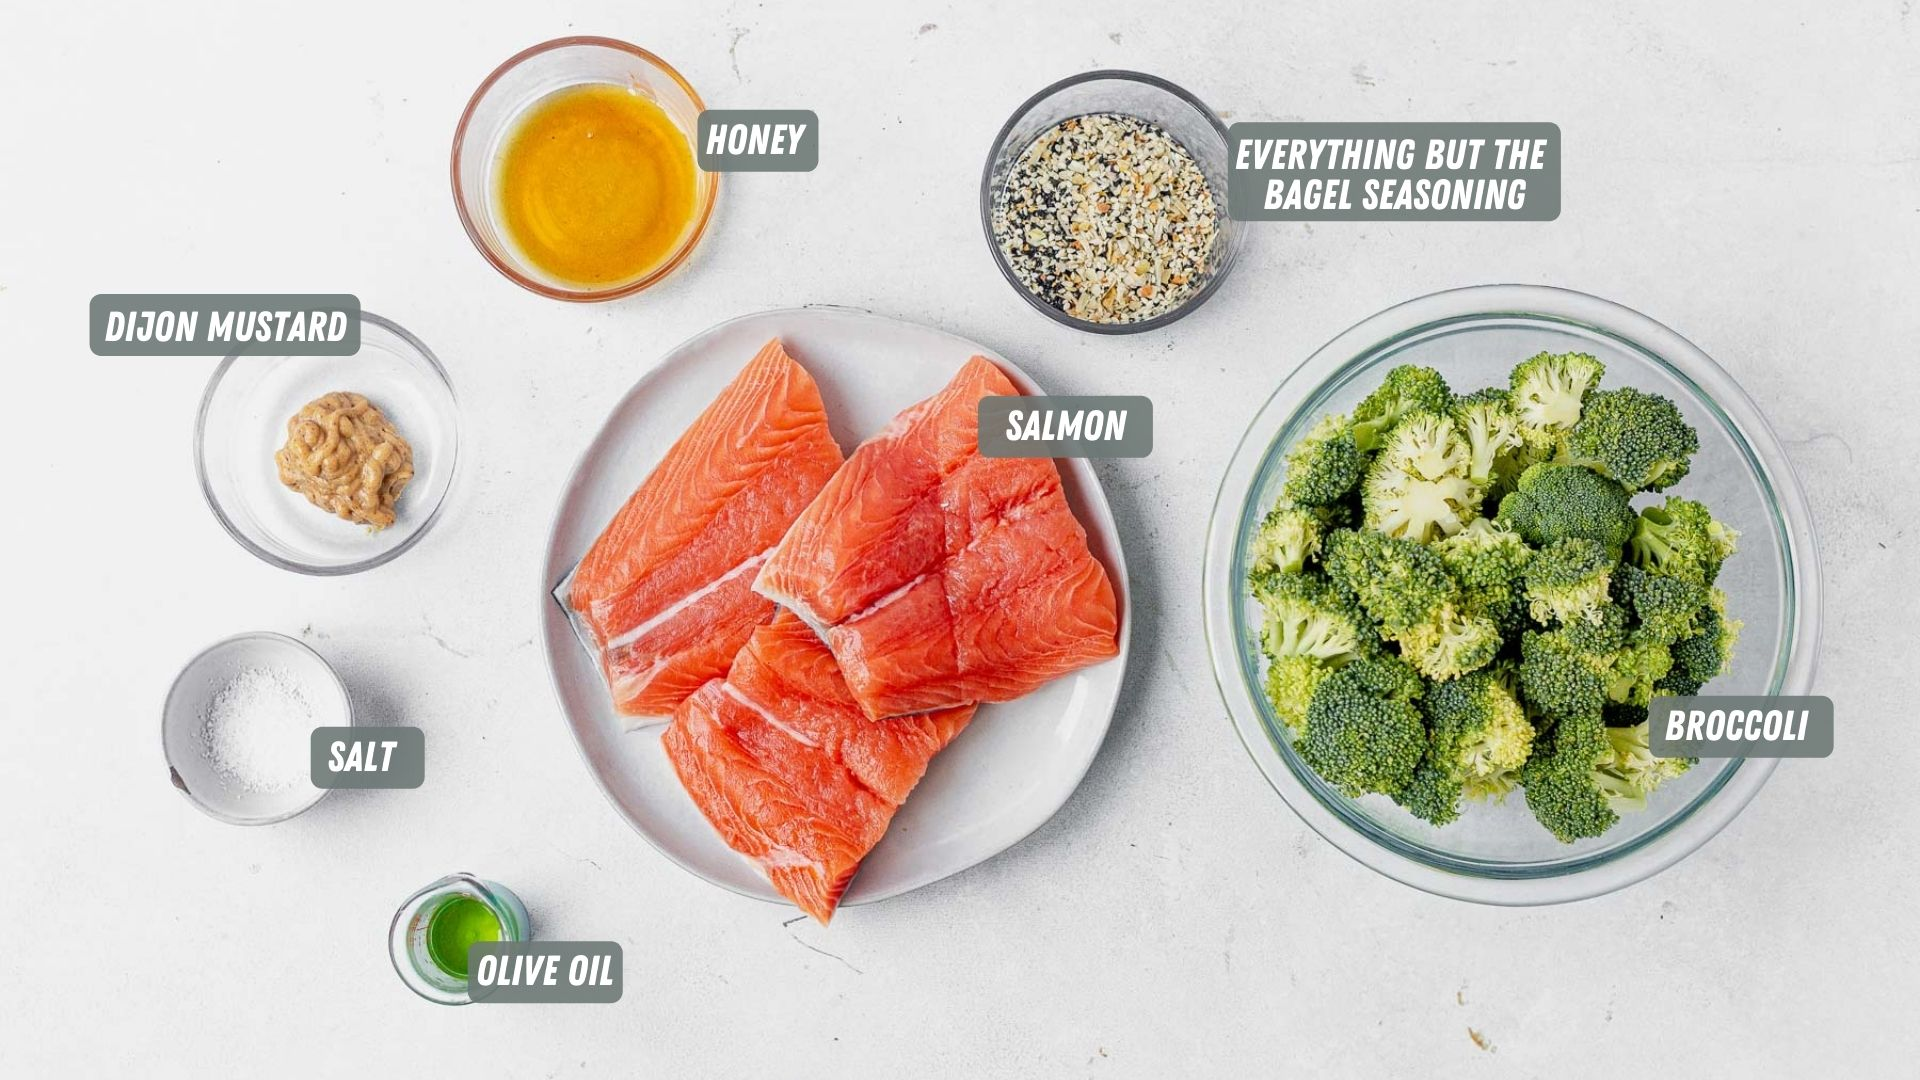 everything but the bagel salmon ingredients measured out on a white table